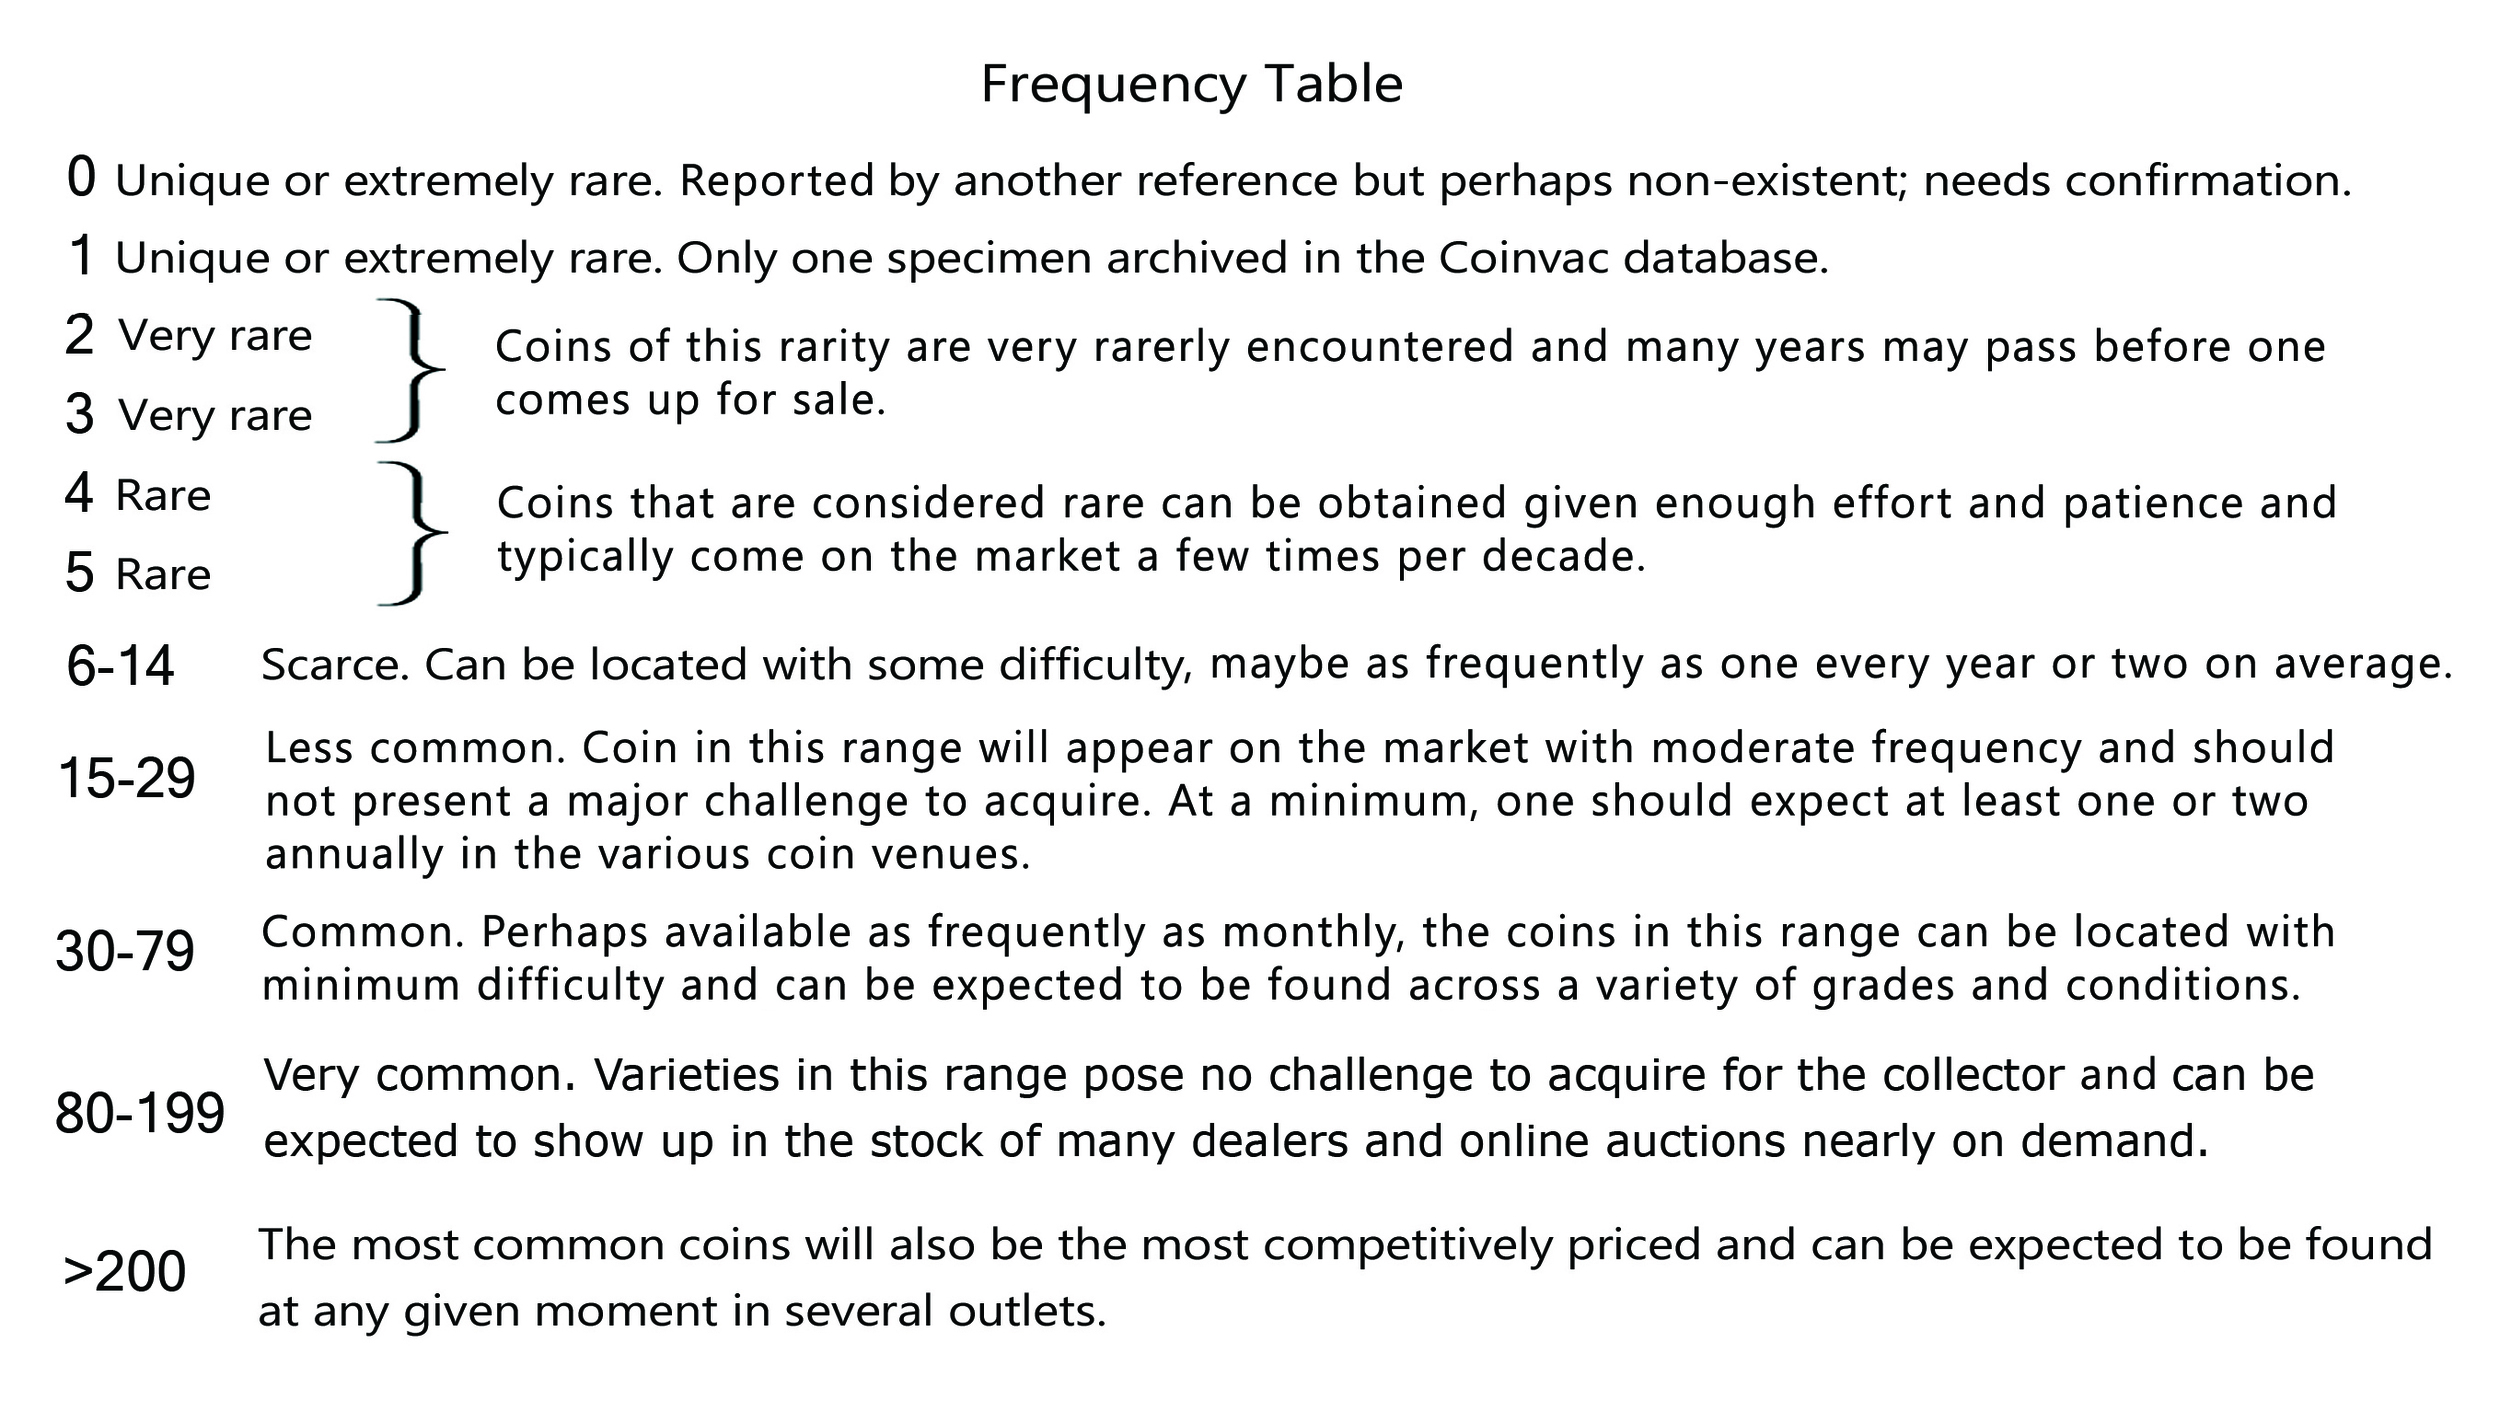 A table for defining the market rarity for ancient Roman coins